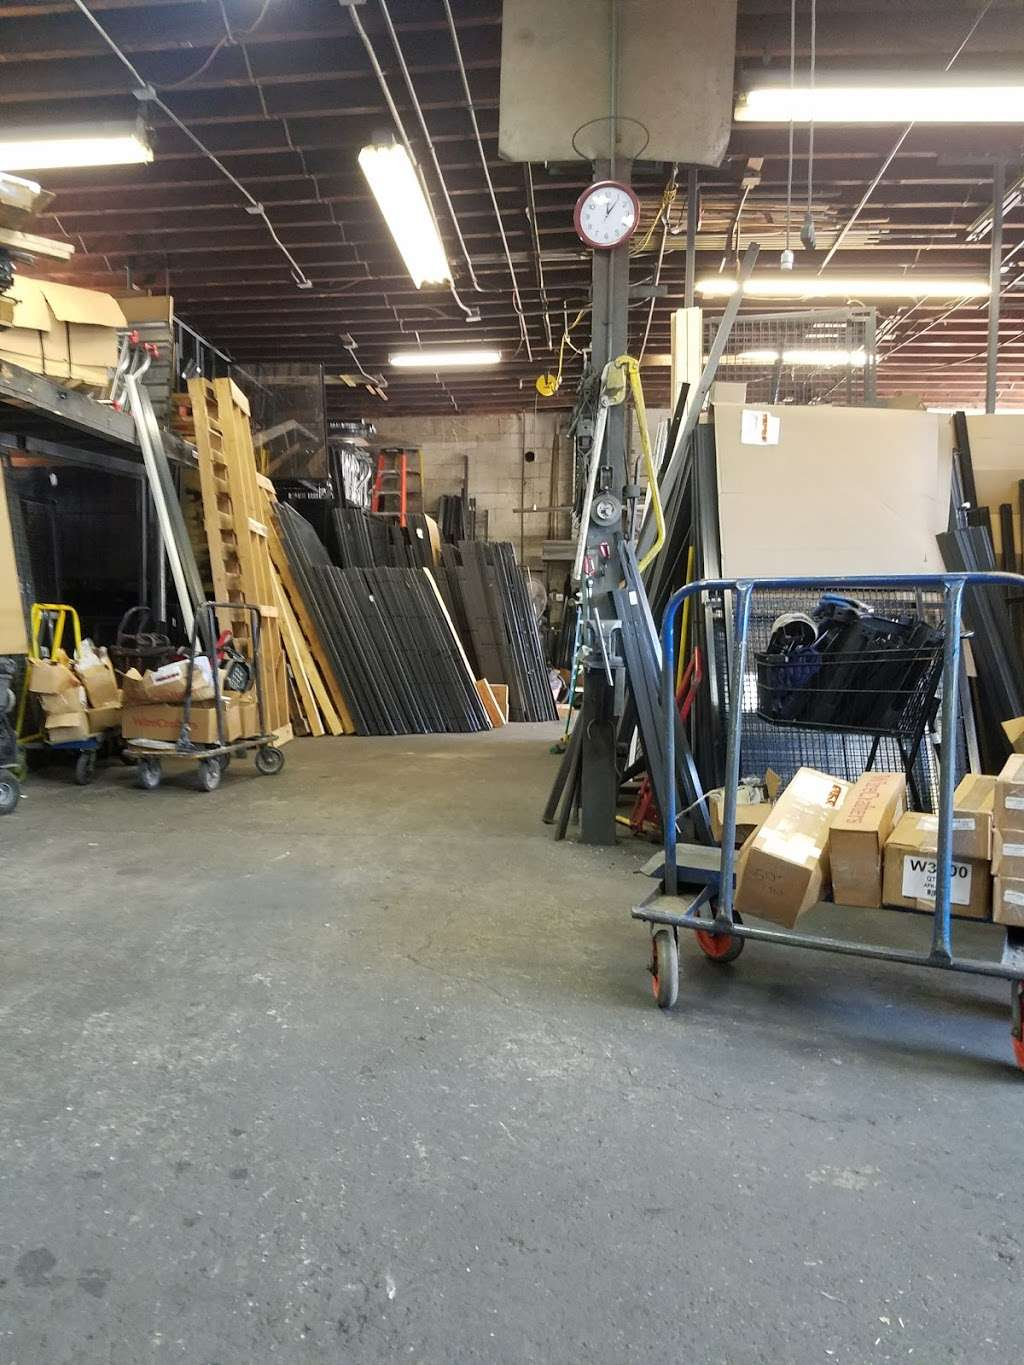 Giant Industrial Installations - store  | Photo 3 of 5 | Address: 1434 112th St, Flushing, NY 11356, USA | Phone: (718) 359-1619